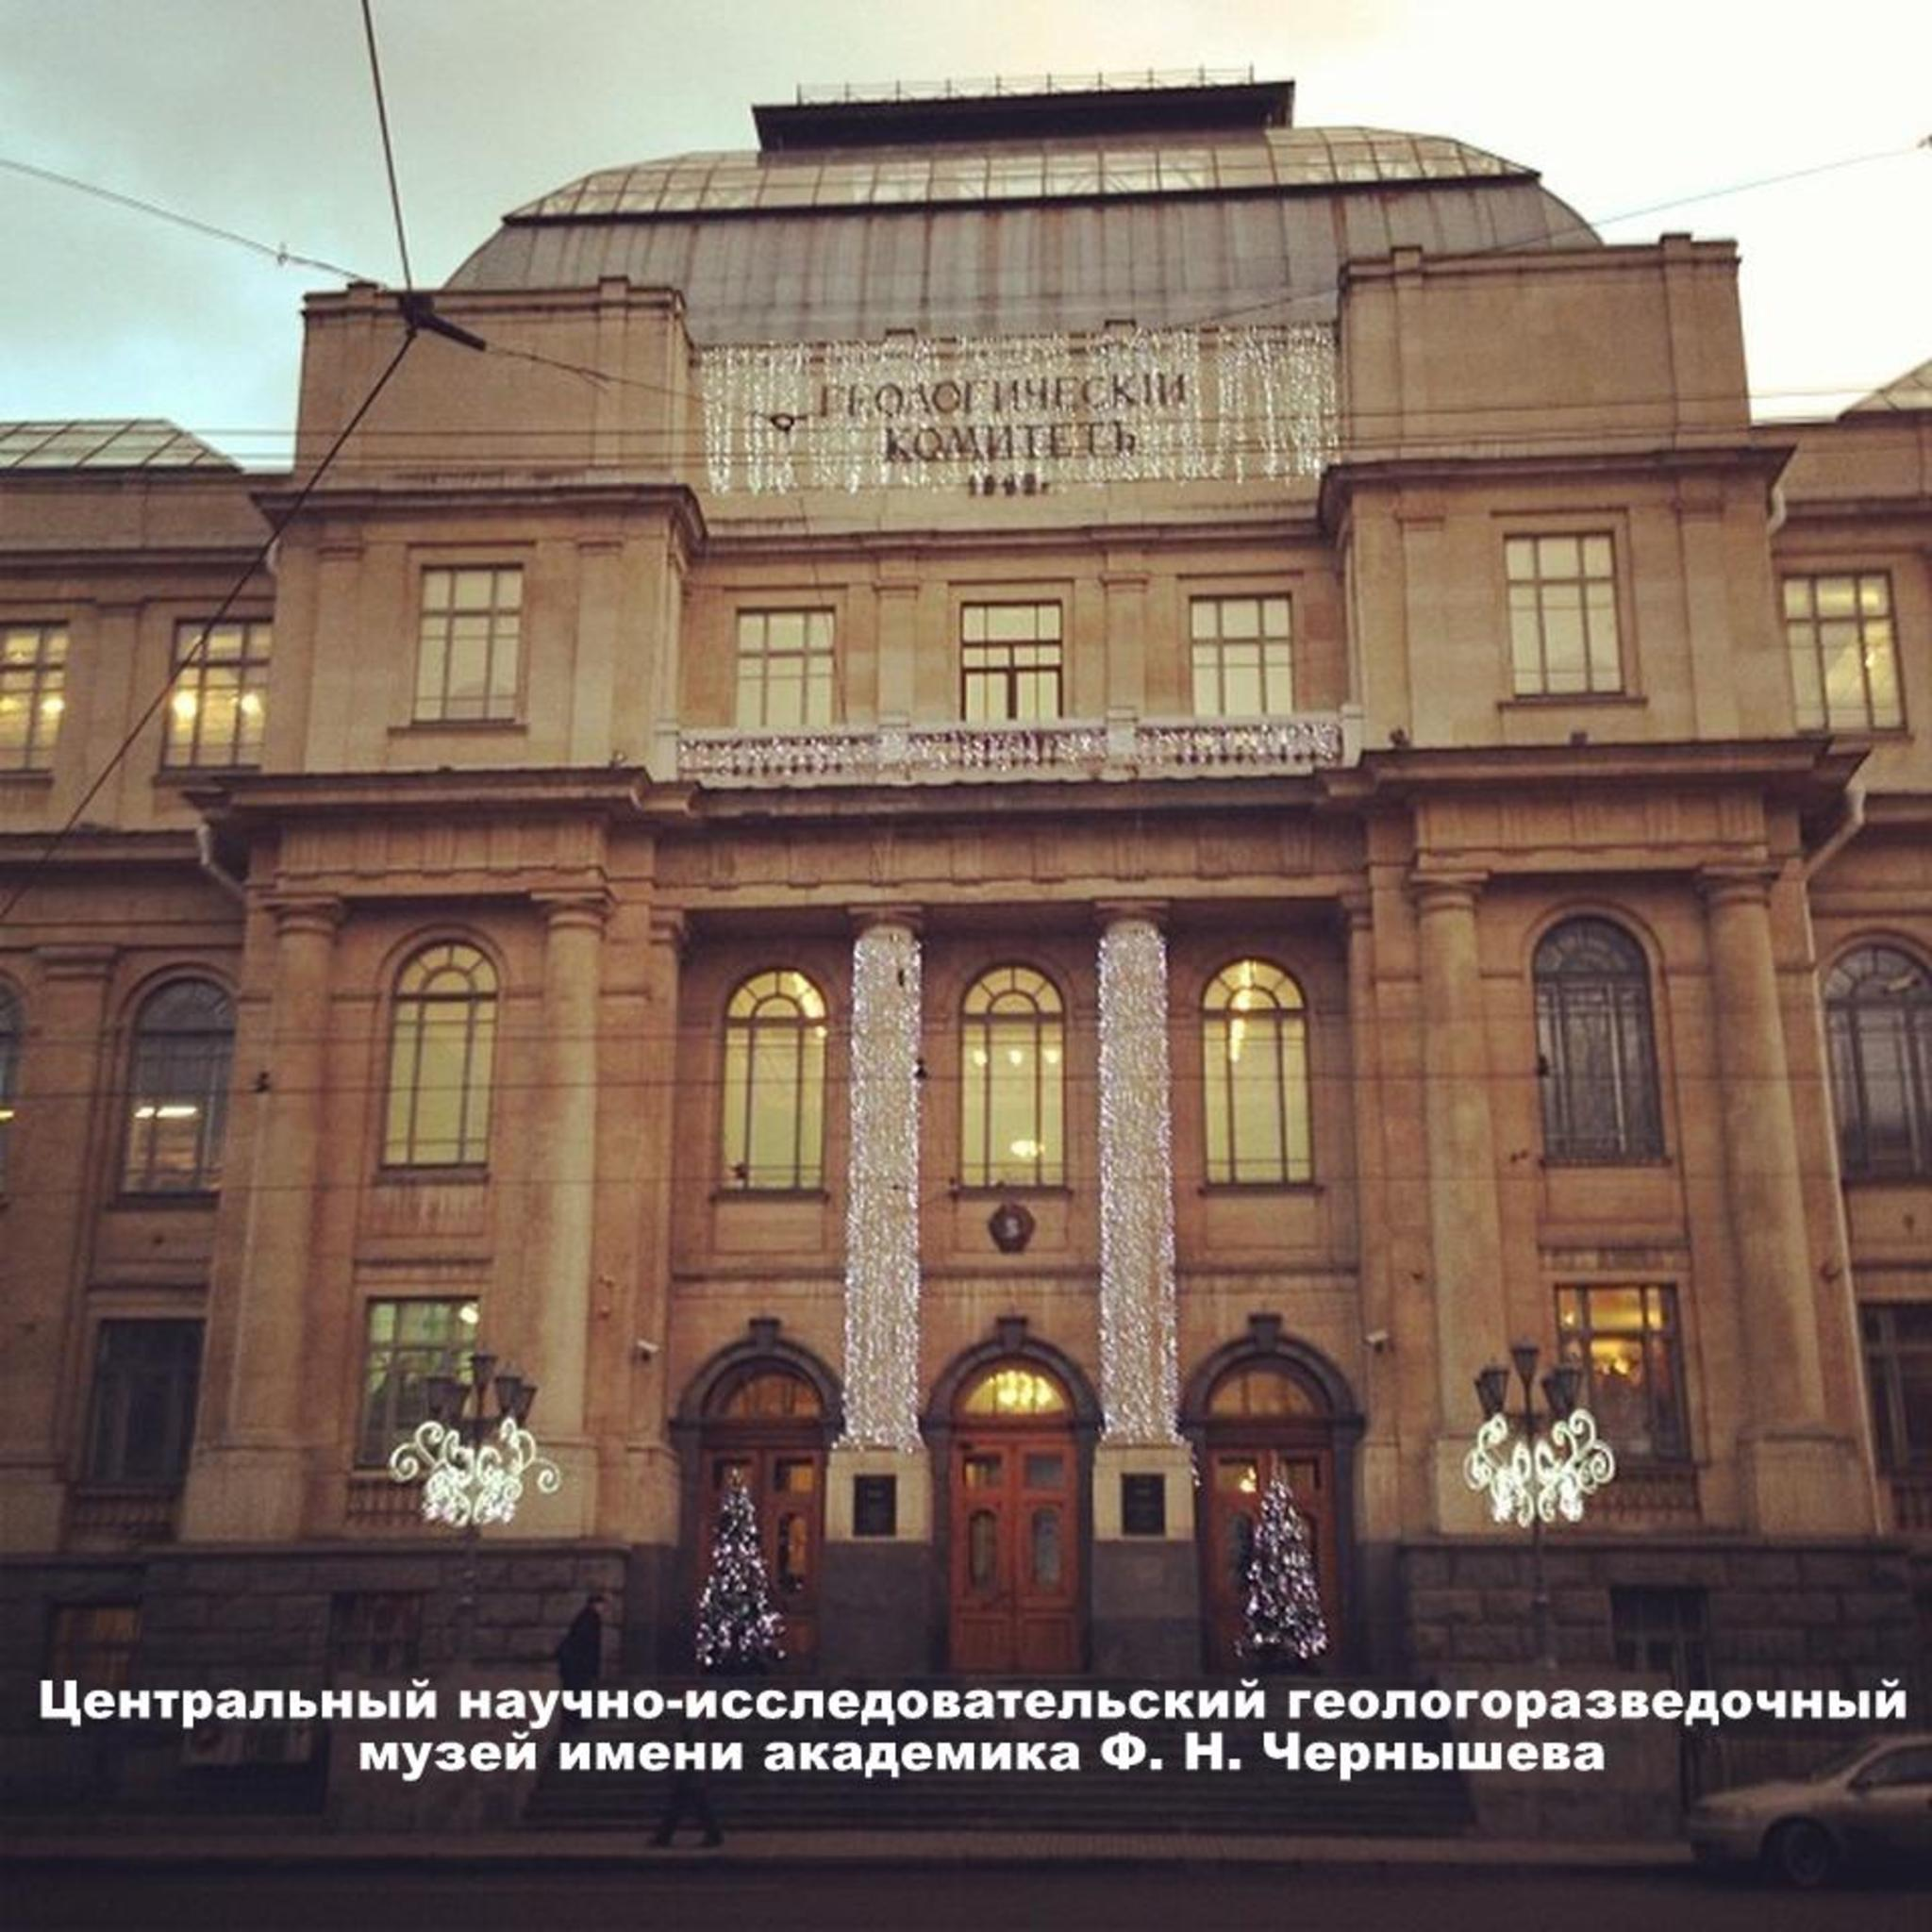 Central research-geological exploration museum named after academician F. N. Chernysheva